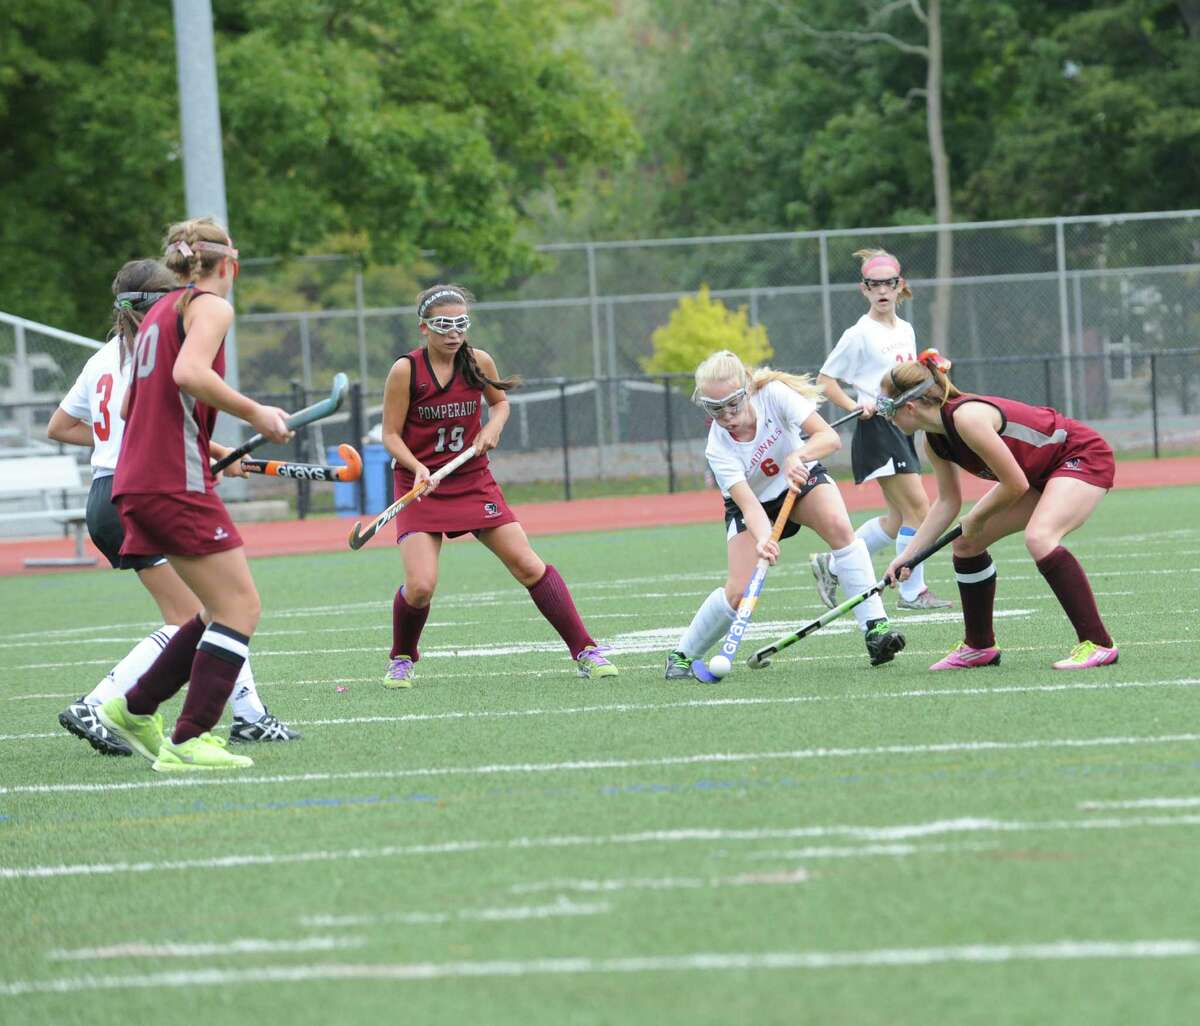 Greenwich High School's #6 Emma Montgomery in a game of field hockey with Pomperaug High School in Greenwich, Monday, Oct. 8, 2012.